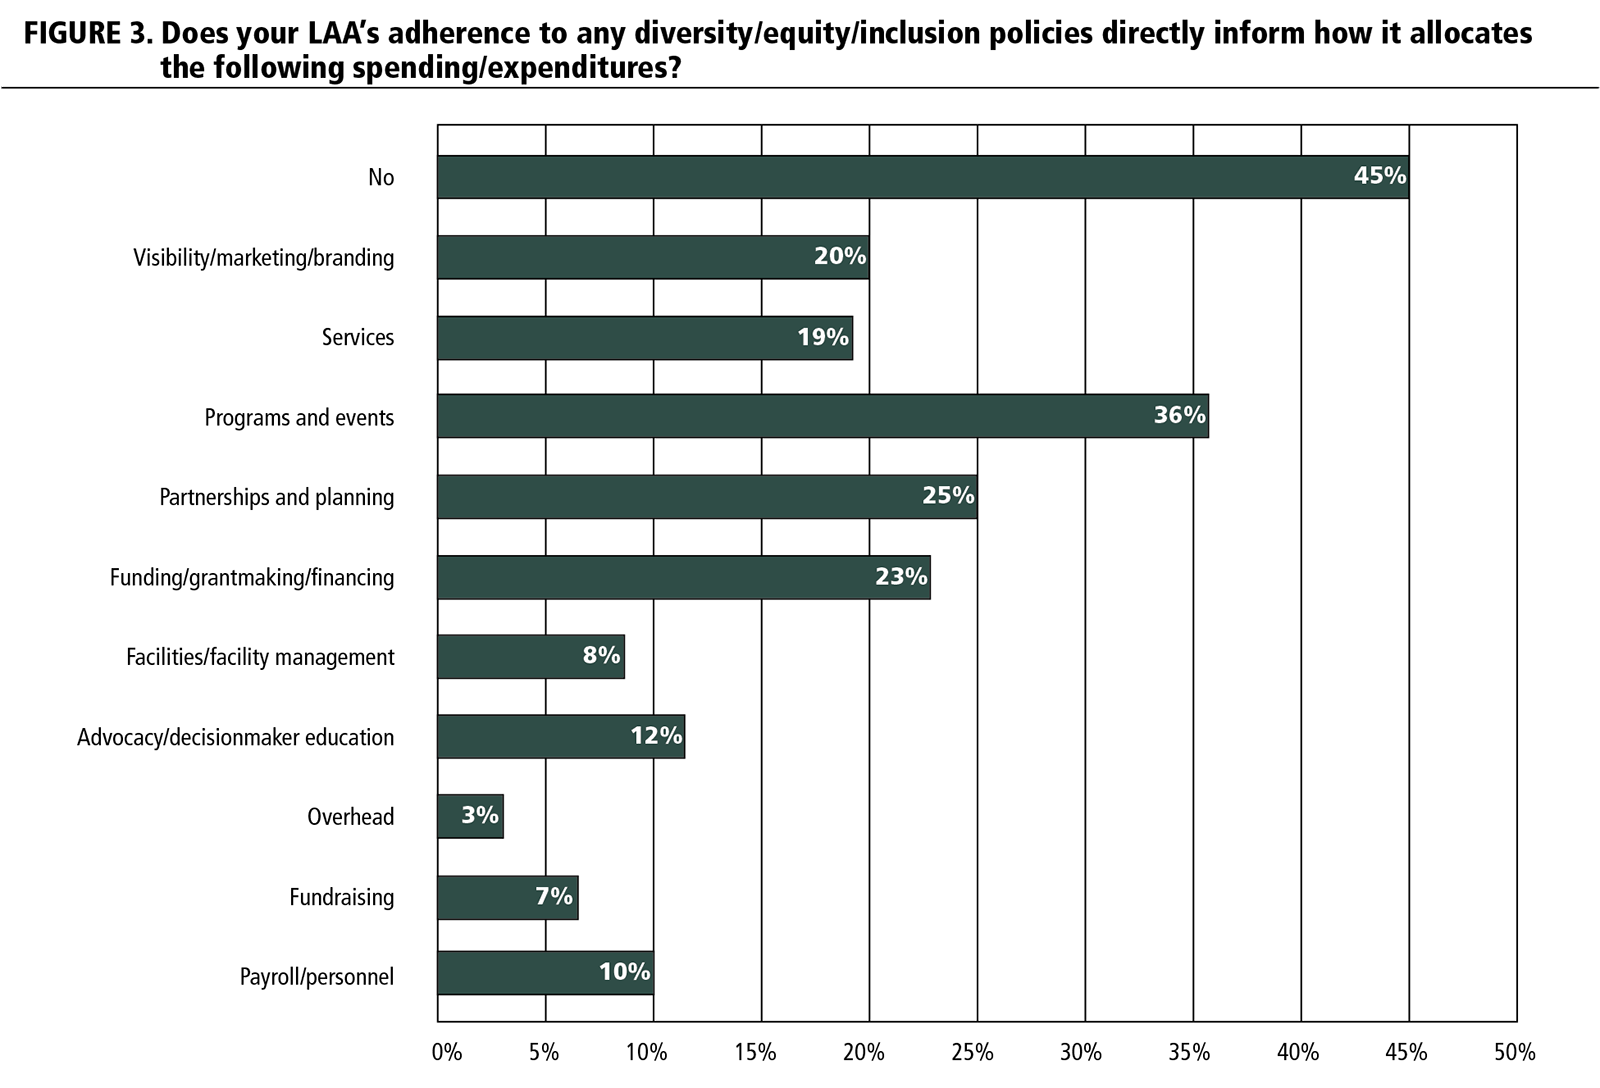 FIGURE 3. Does your LAA's adherence to any diversity/equity/inclusion policies directly inform how it allocates the following spending/expenditures?